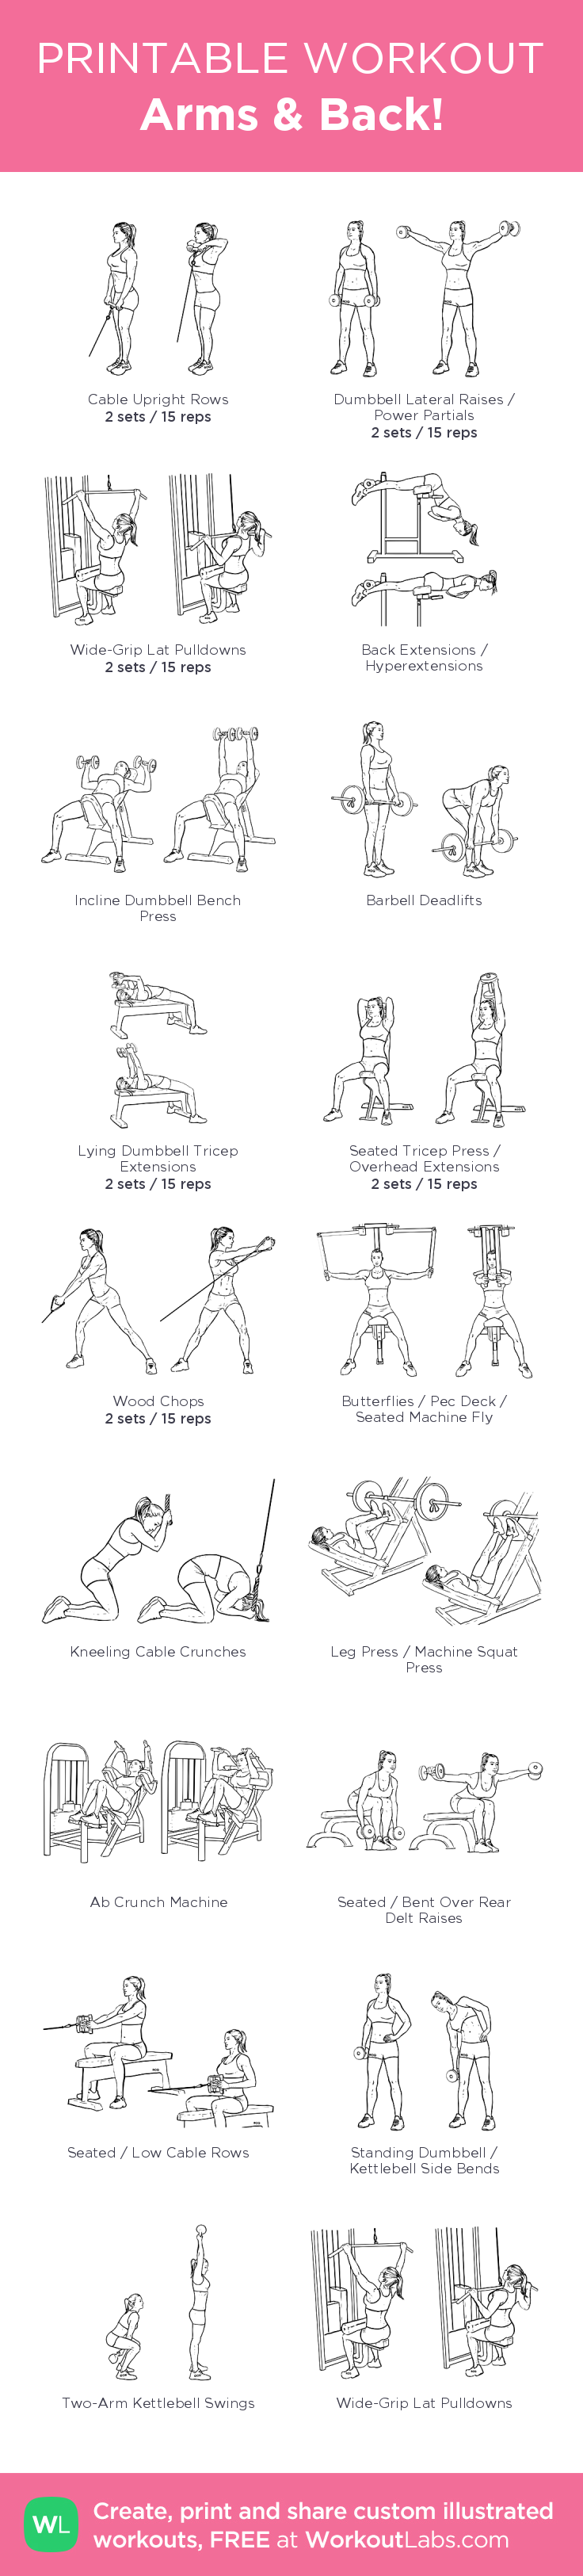 Arms & Back! – illustrated exercise plan created at WorkoutLabs.com • Click for a printable PDF and to build your own #customworkout